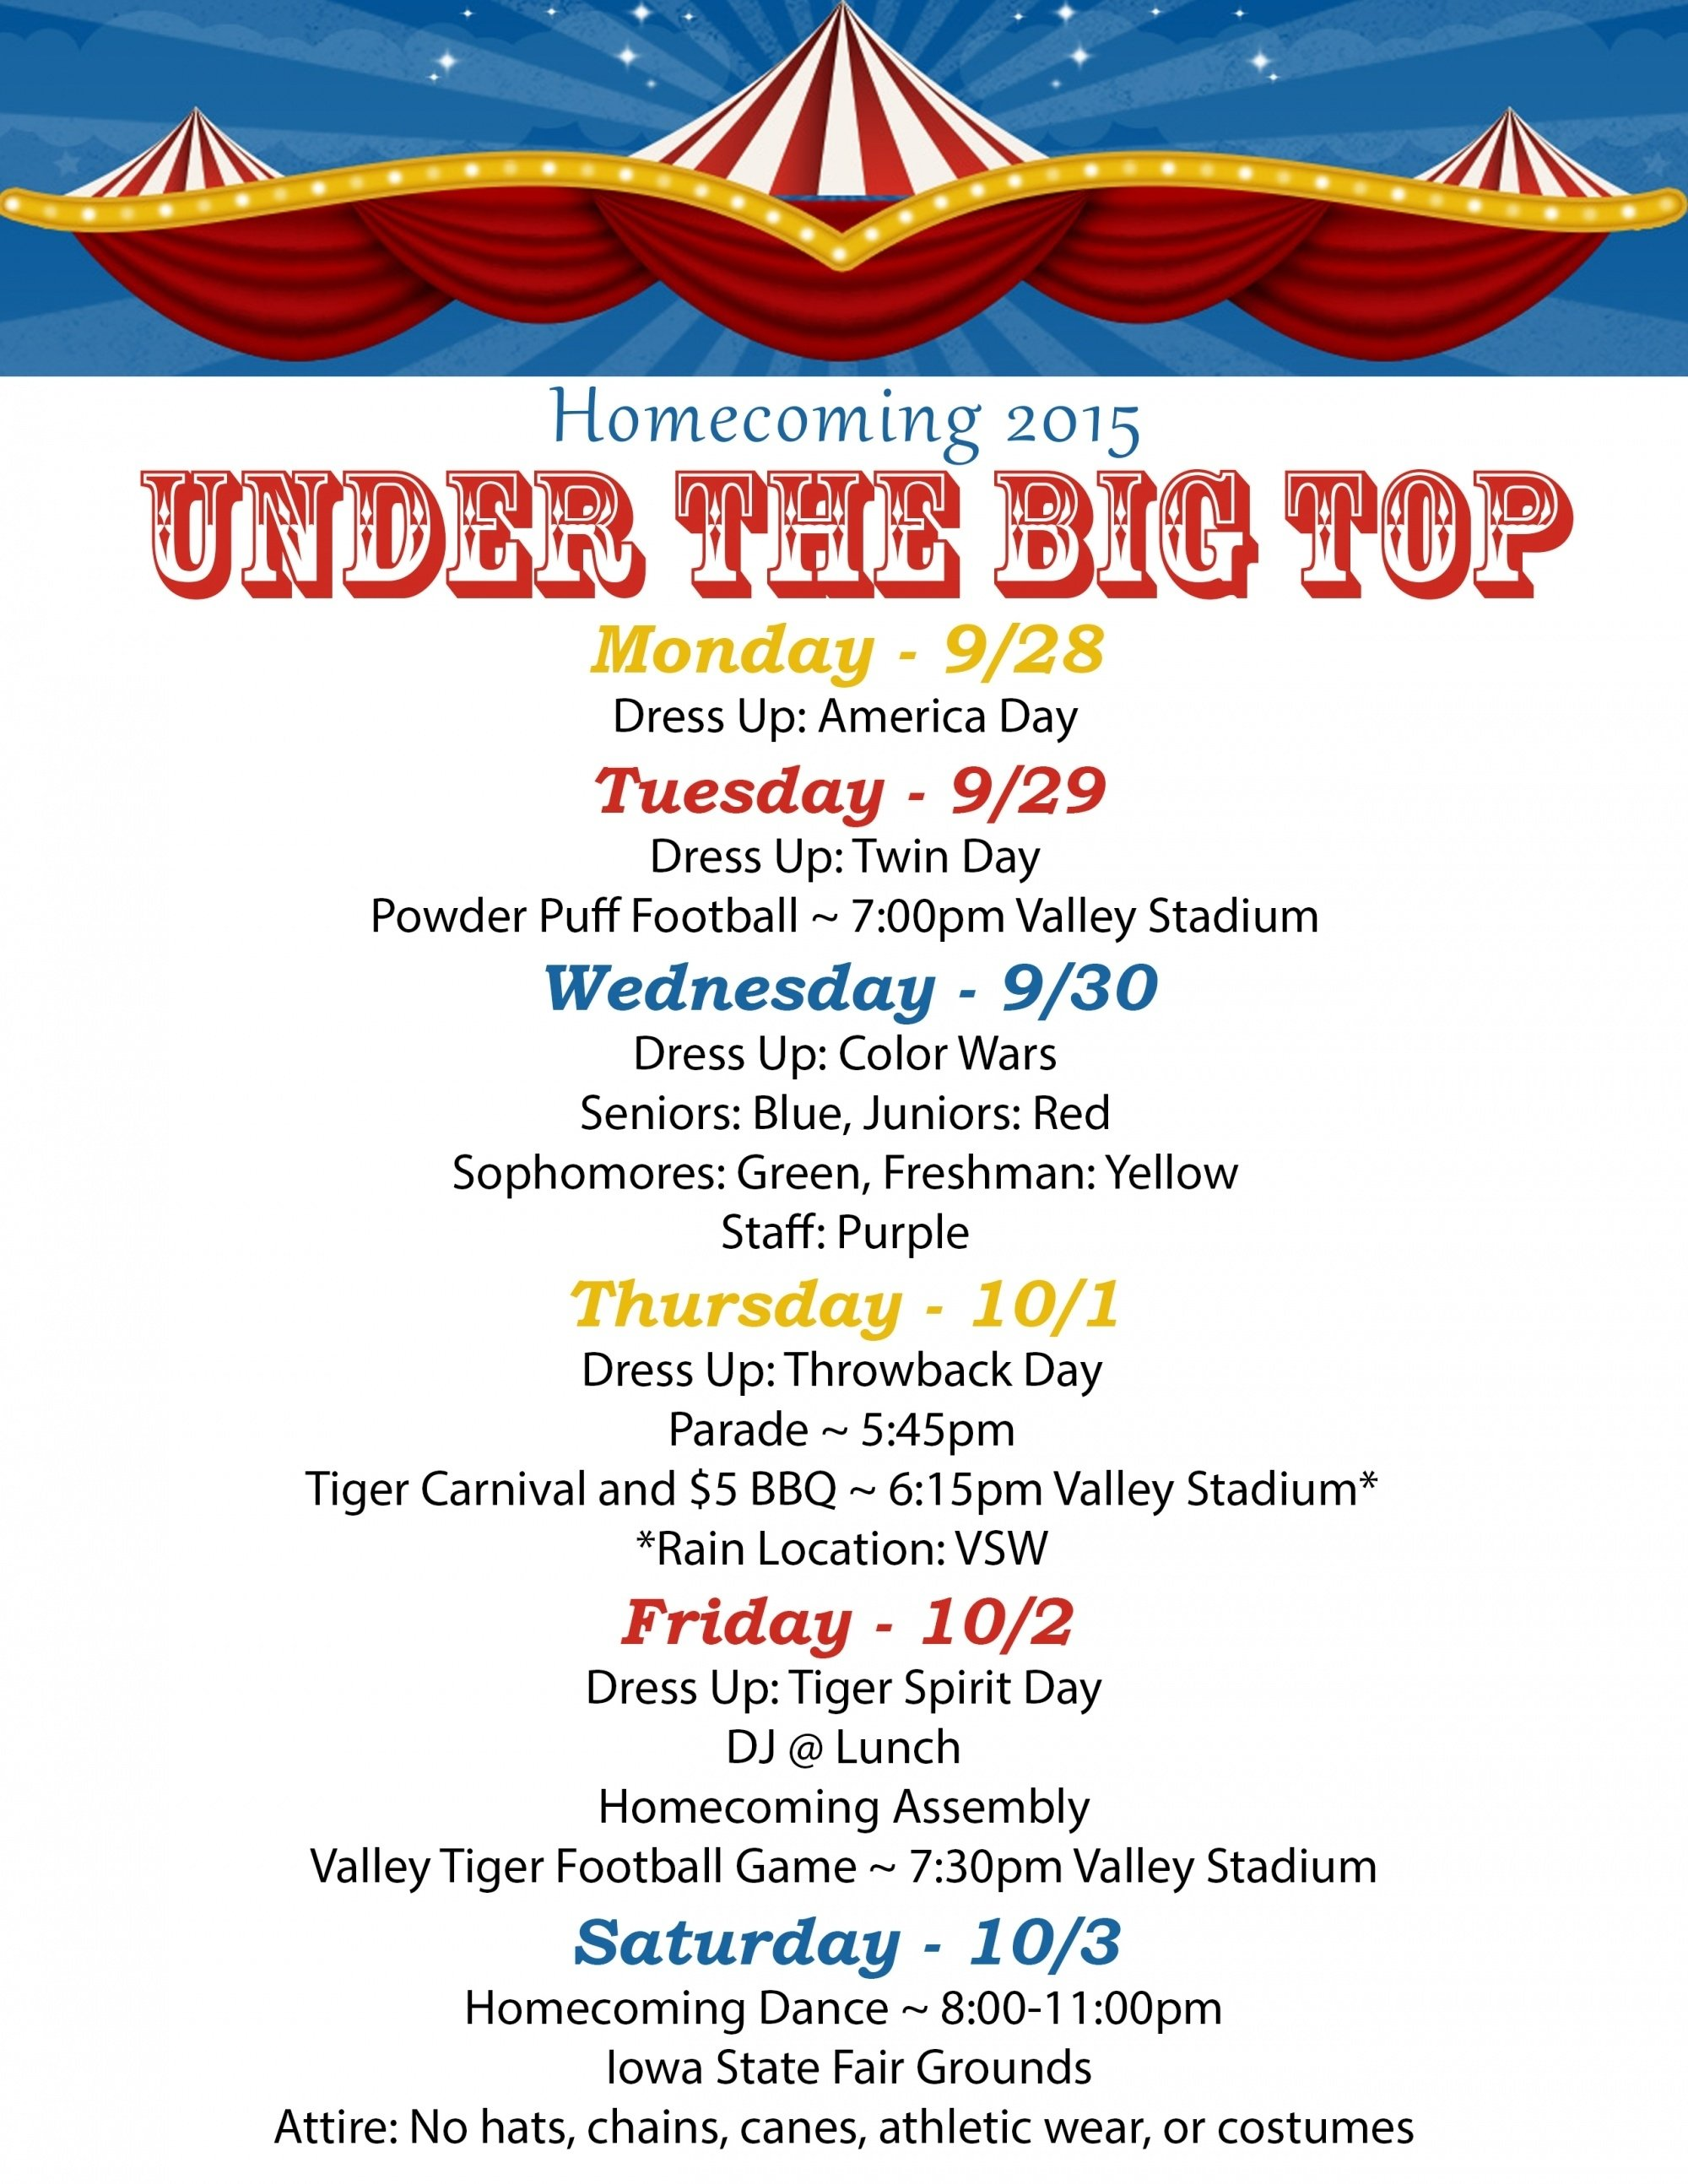 10 Best High School Homecoming Theme Ideas all about homecoming 2015 west des moines community schools 2 2020